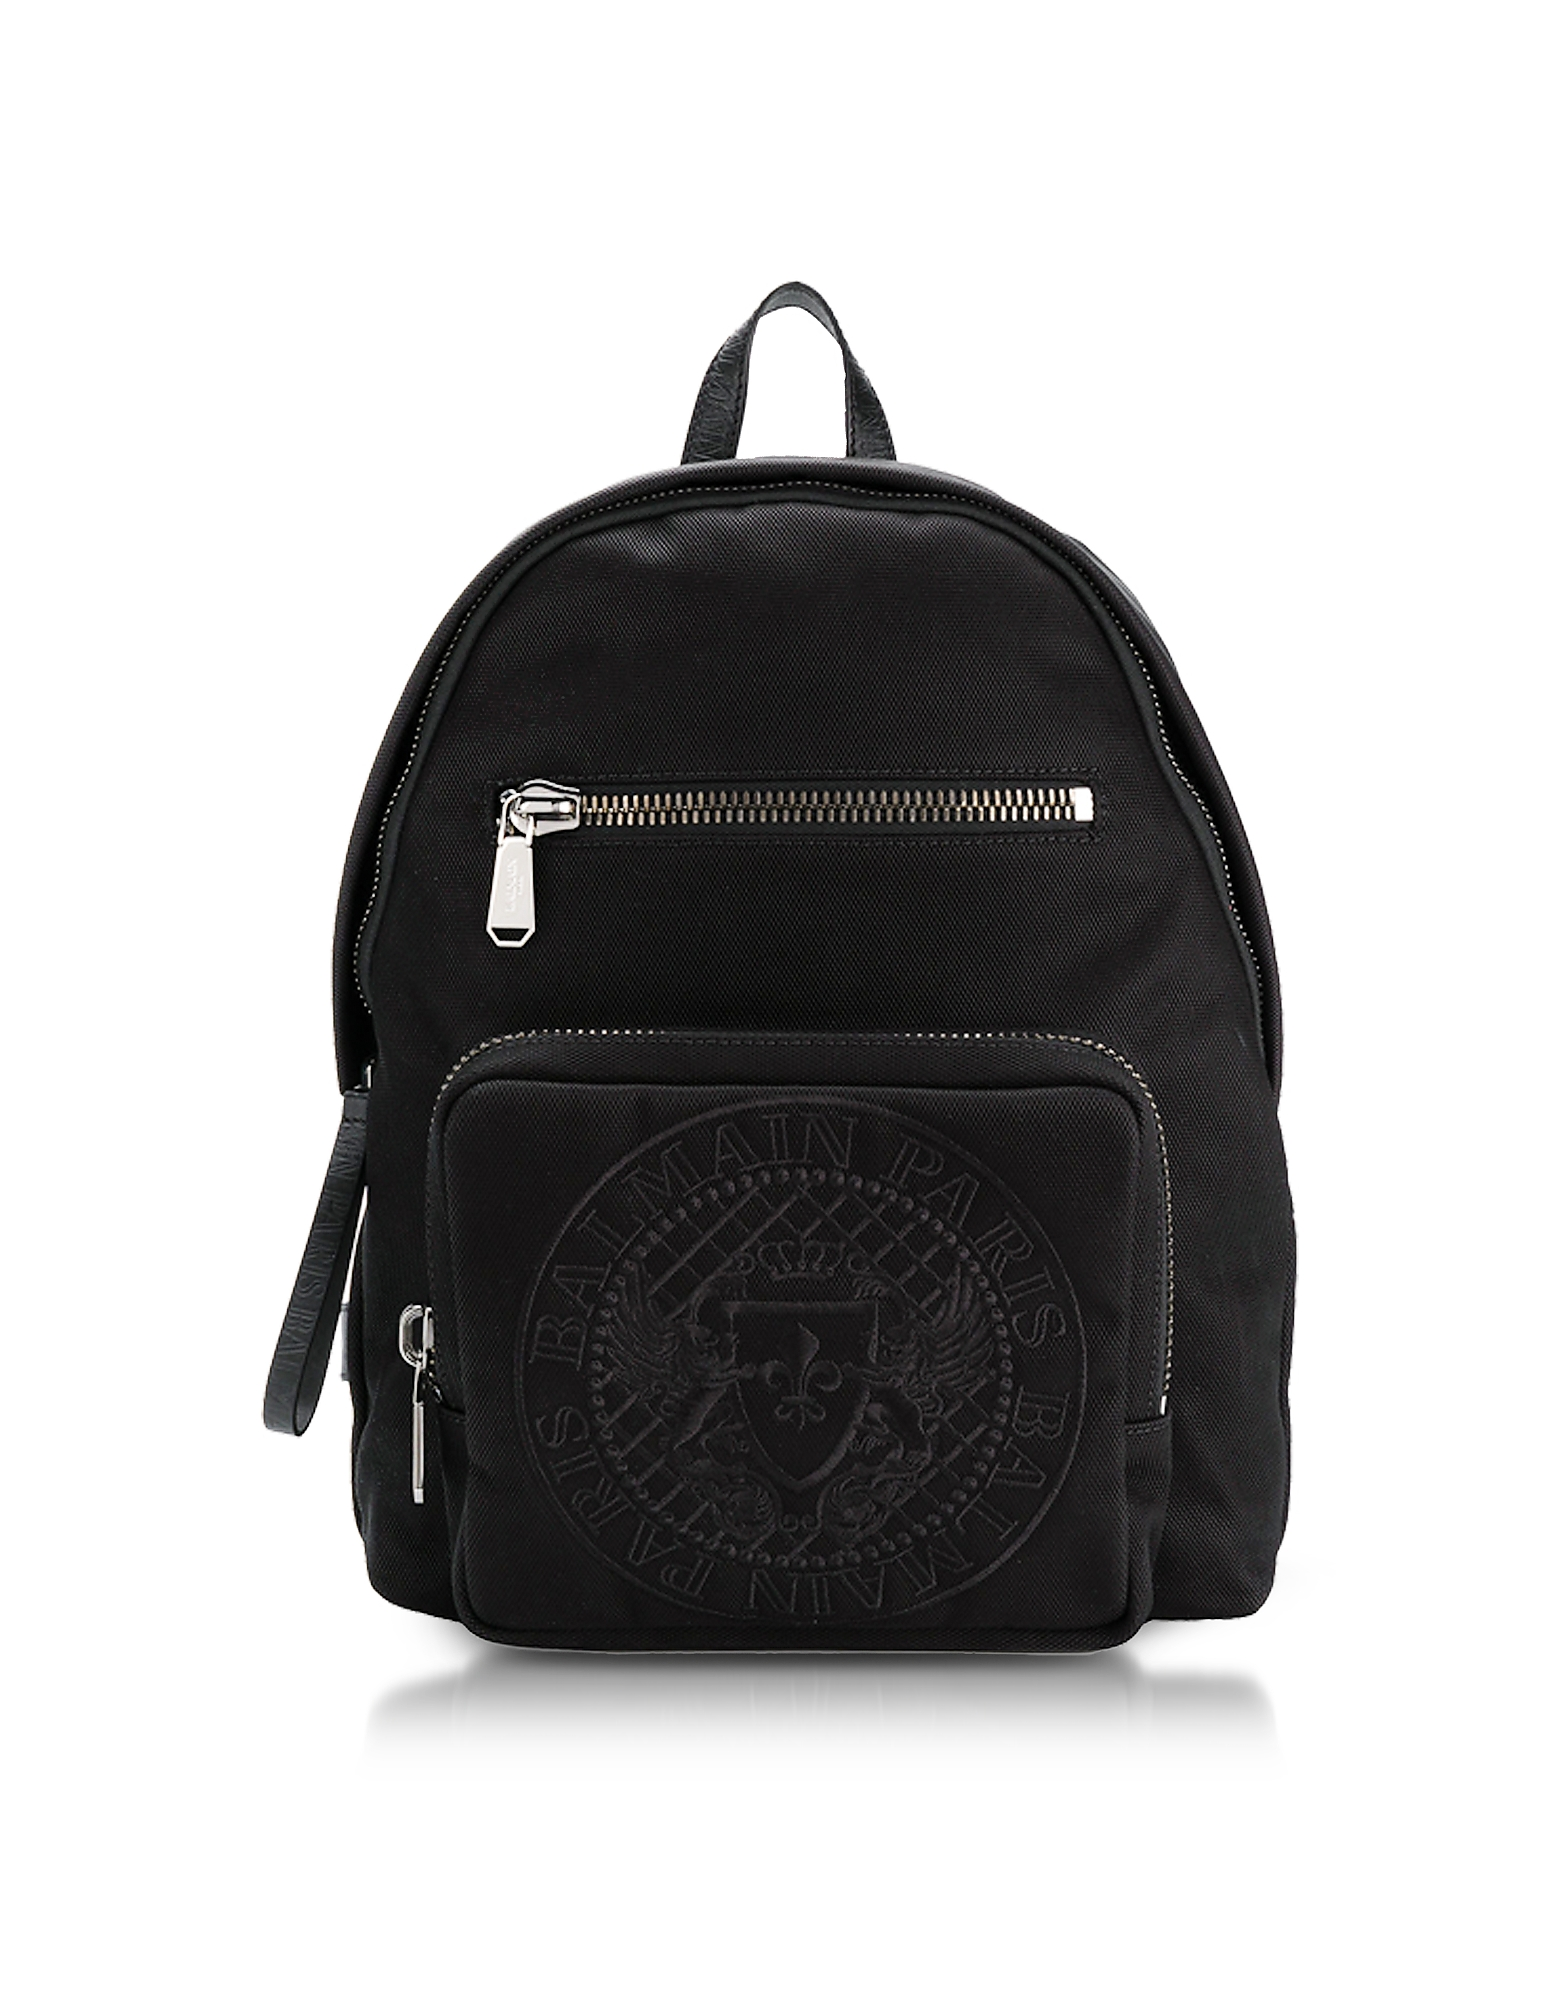 Black Nylon Men's Club Backpack w/Embossed Blazon от Forzieri.com INT